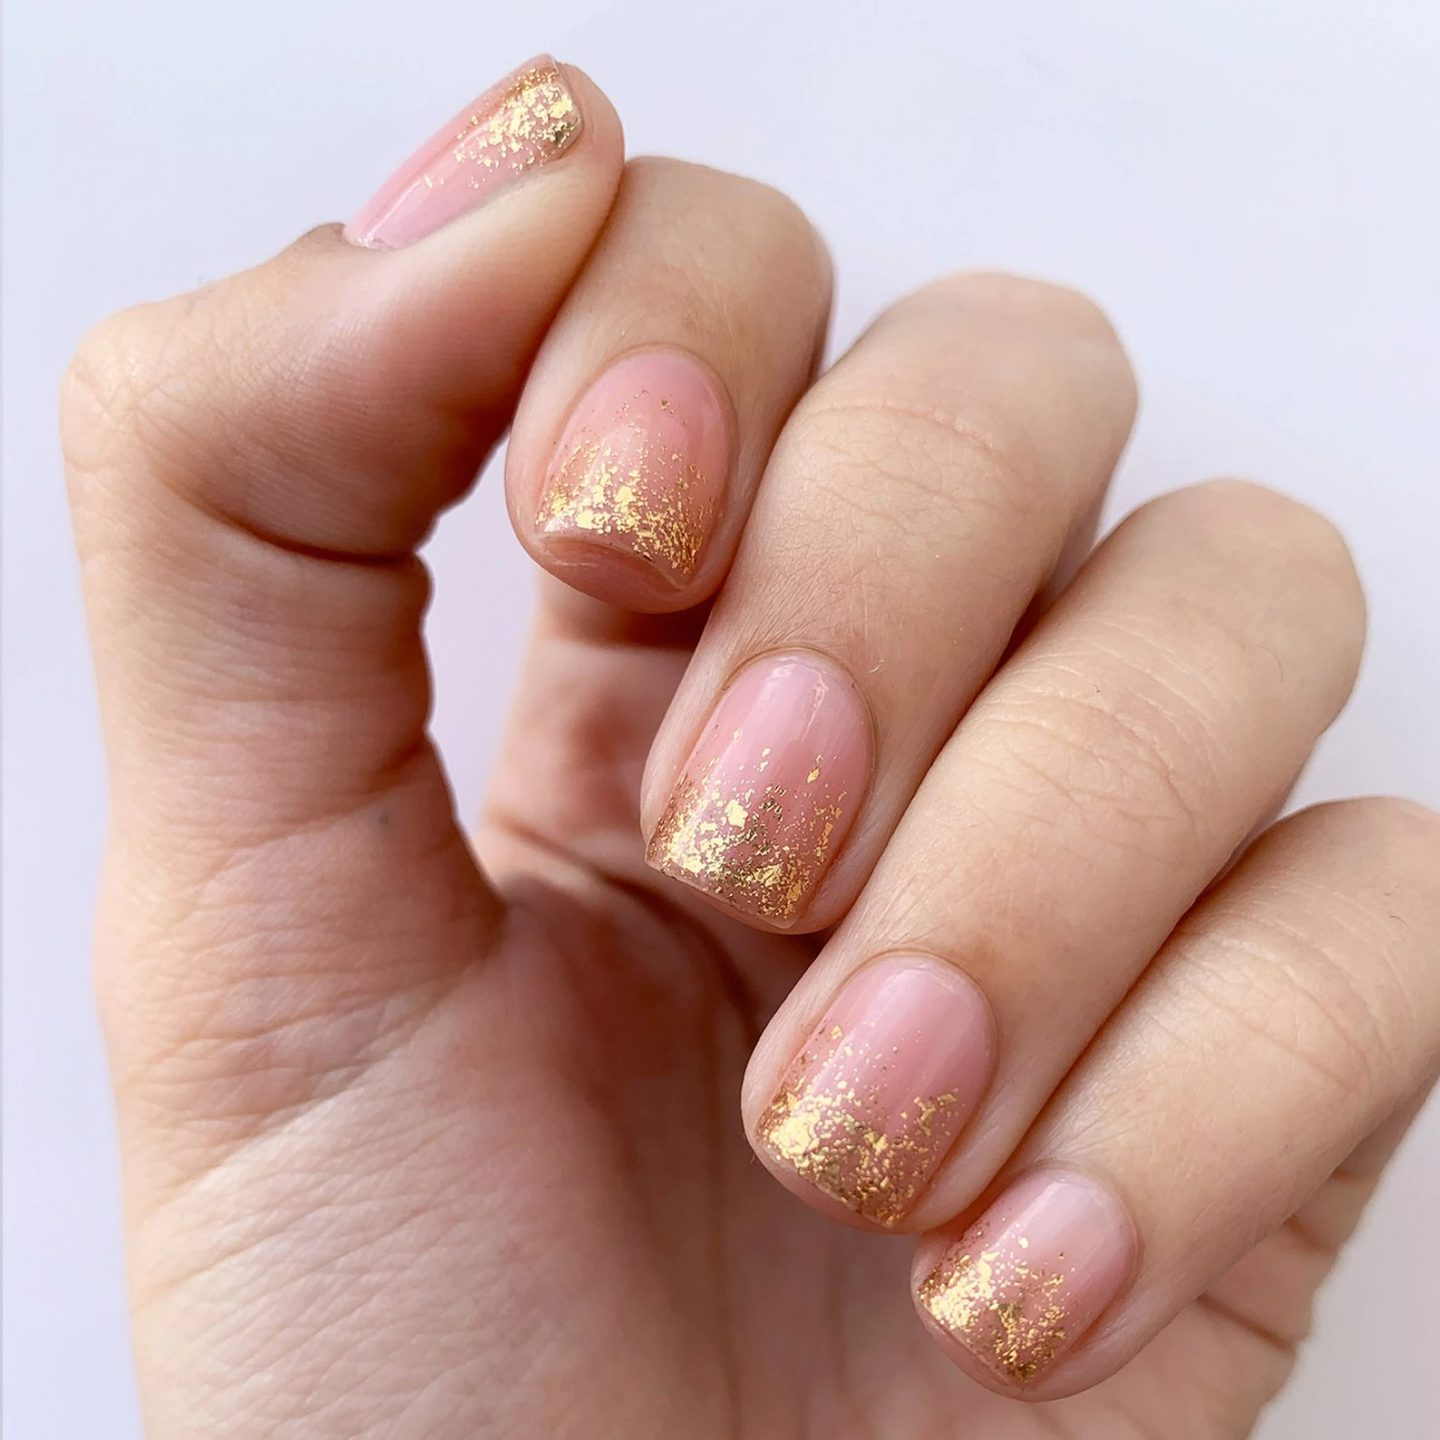 Cute and short gold glitter French tip nails